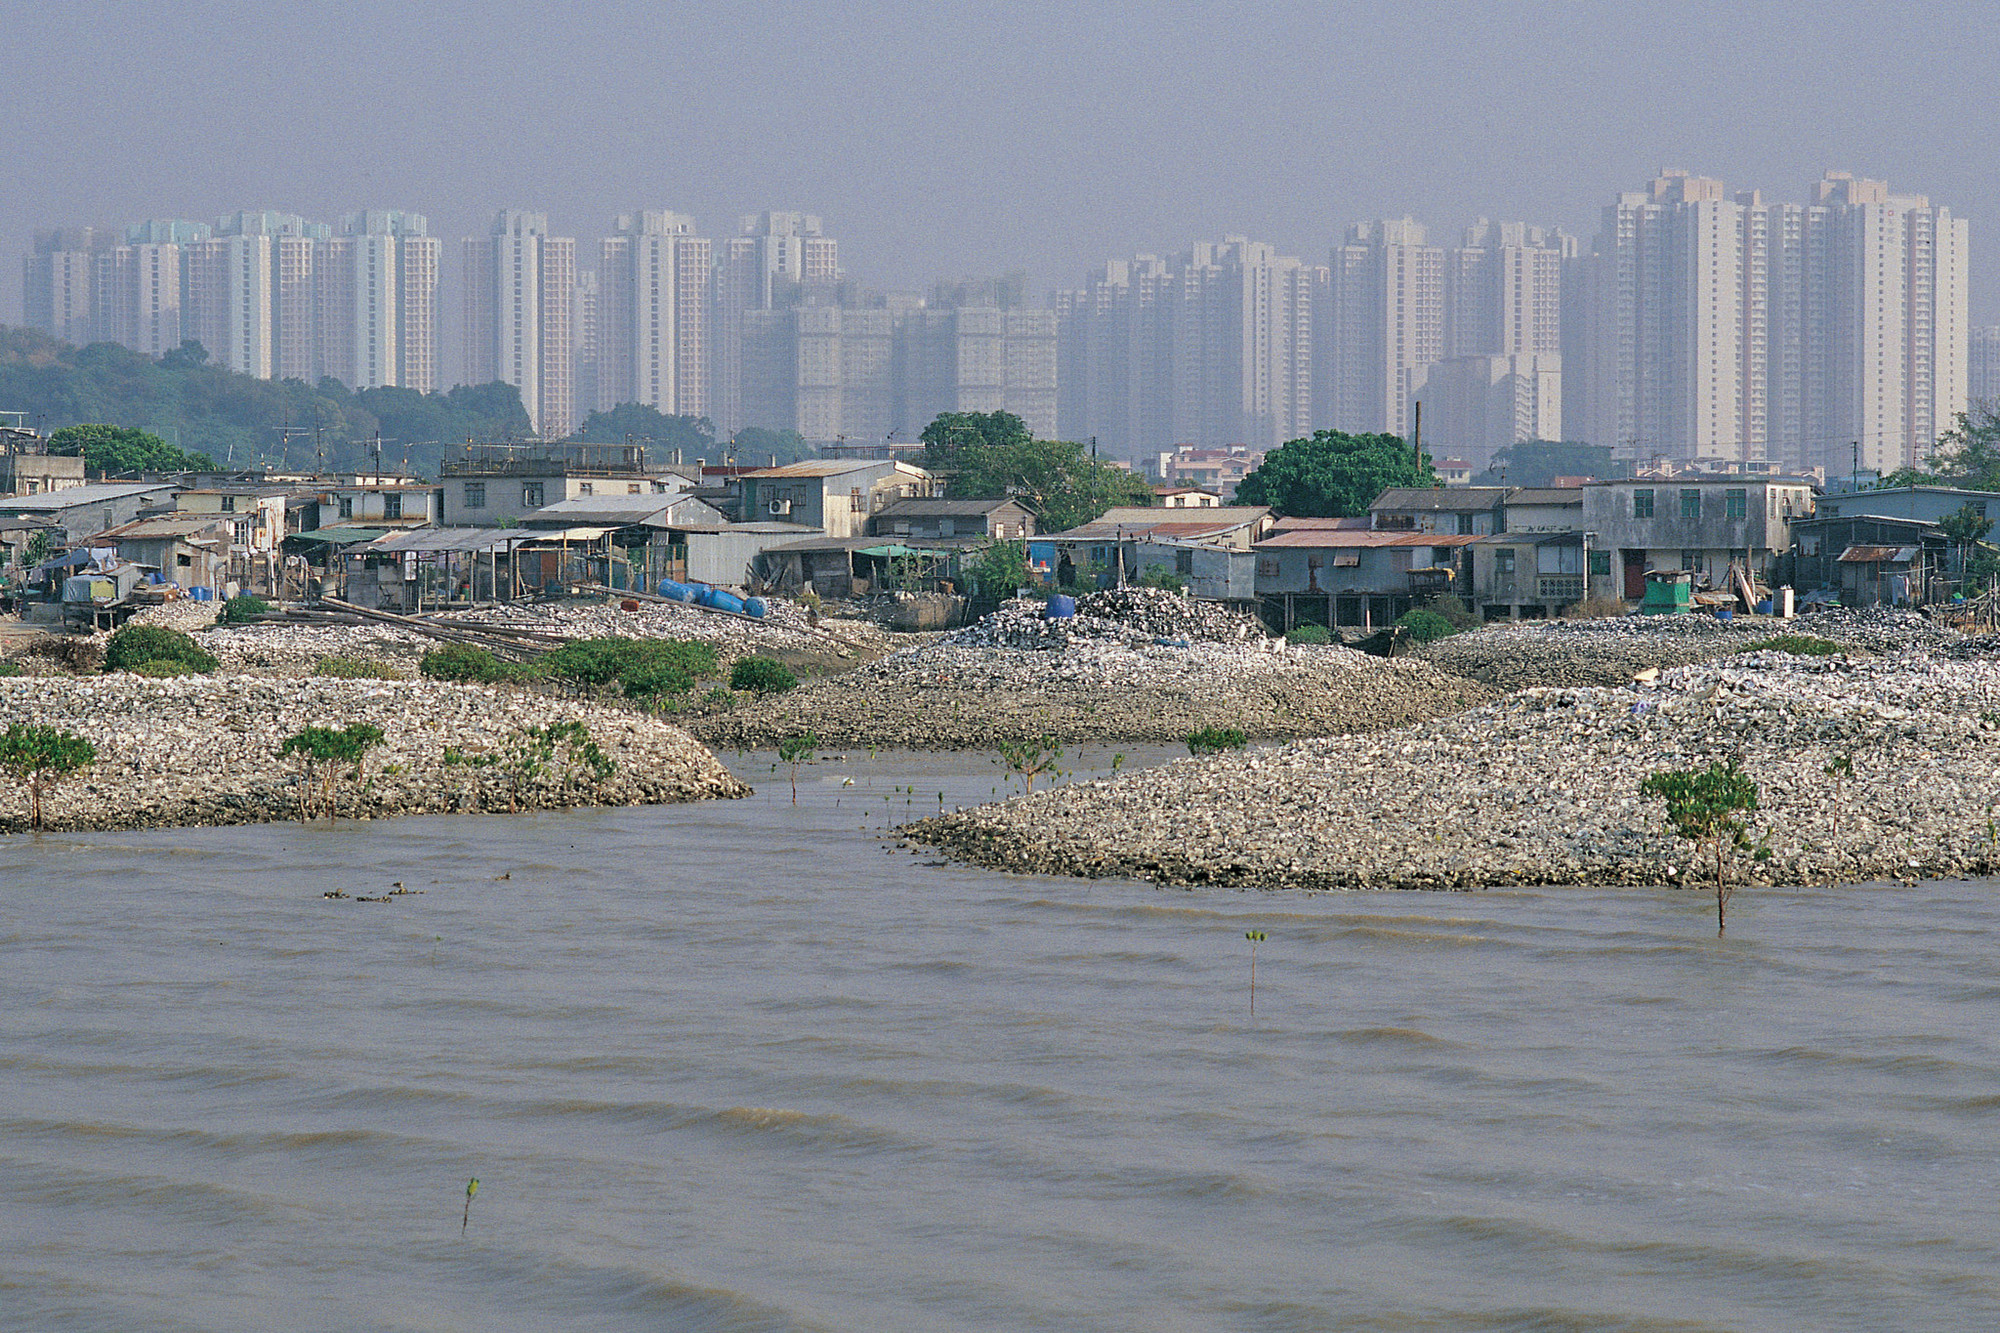 MAP Office Lau Fan Shan oyster farm in the shadows of Tin Shui Wai New Town, Hong Kong. 2014. © Map Office